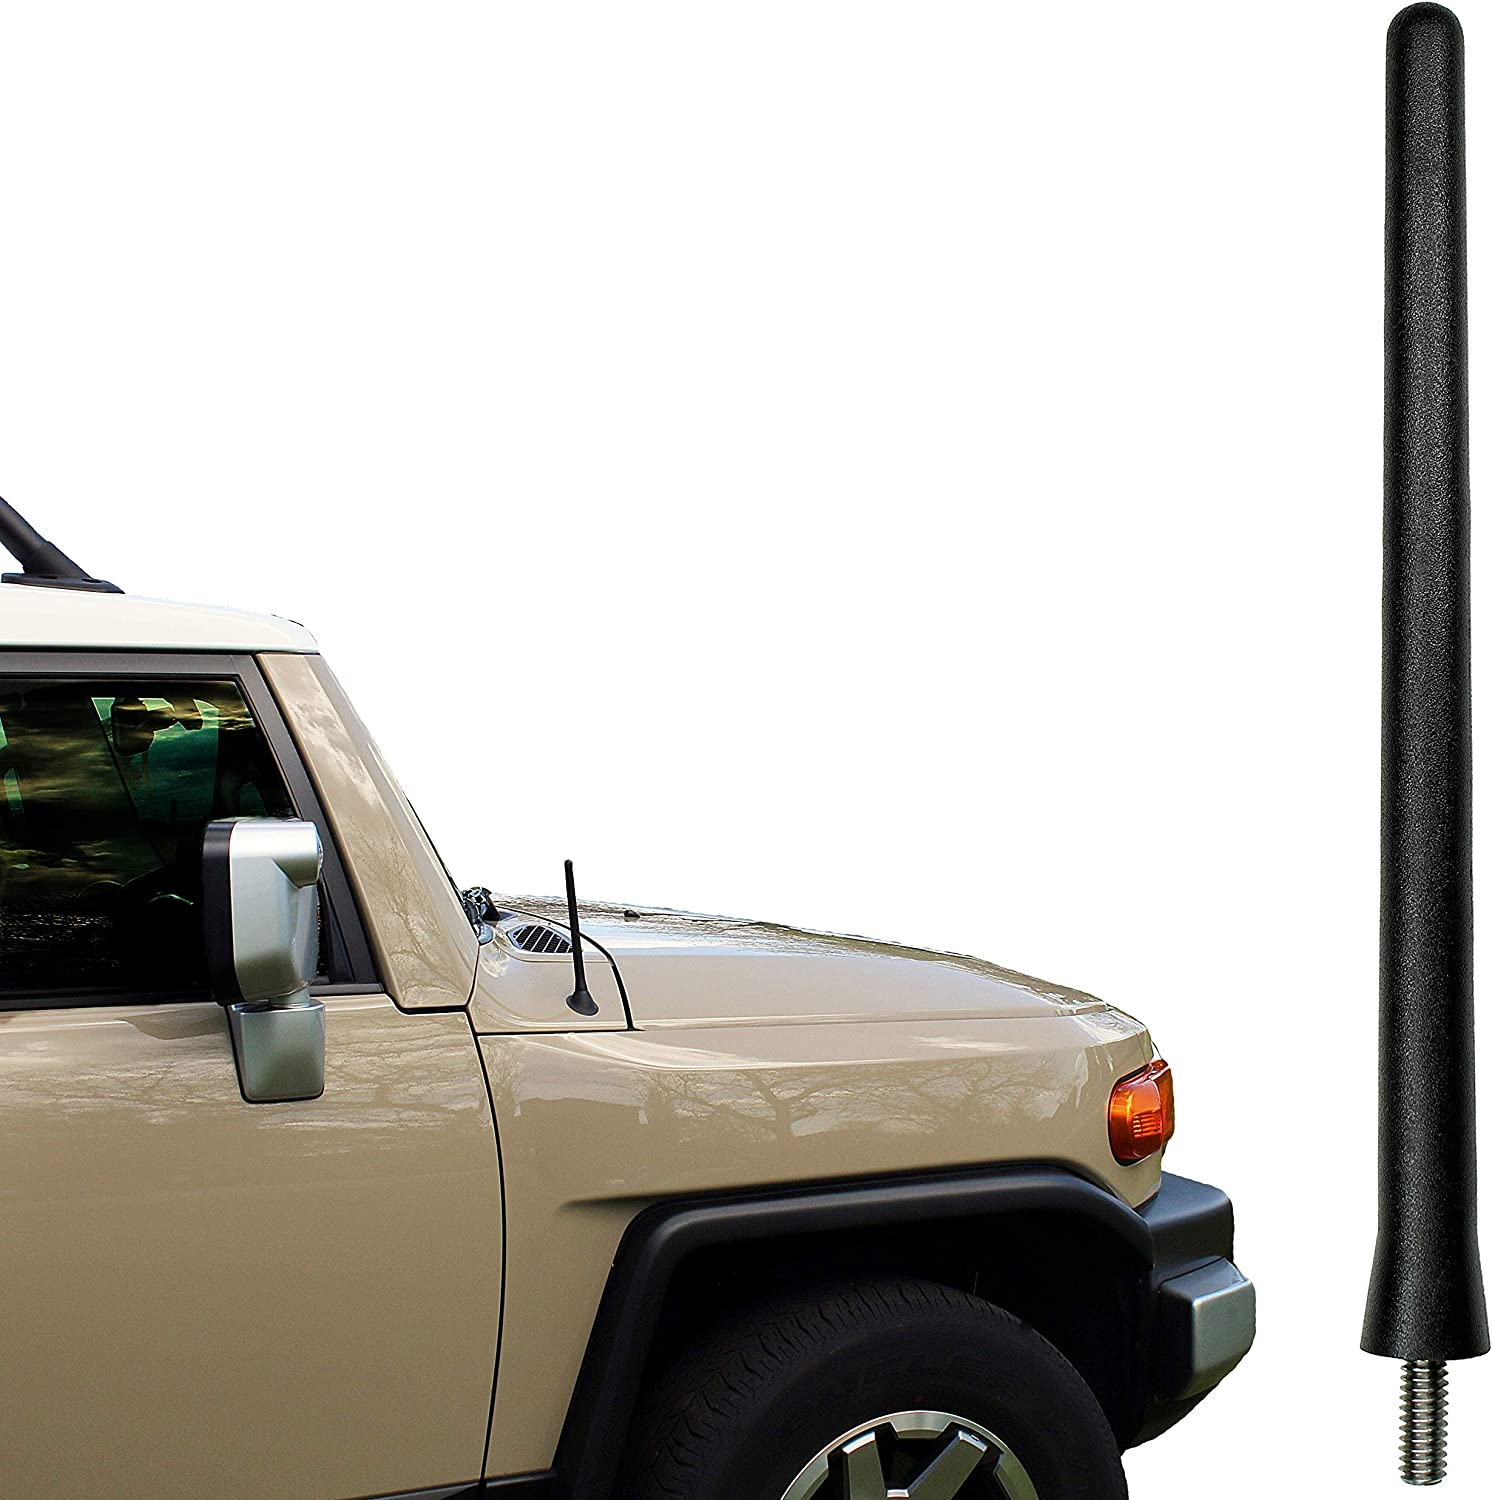 Reception Guaranteed The Original 6 3//4 INCH is Compatible with Chrysler Pacifica - SHORT Rubber Antenna Internal Copper Coil 5558975386 AntennaMastsRus 2007-2008 German Engineered